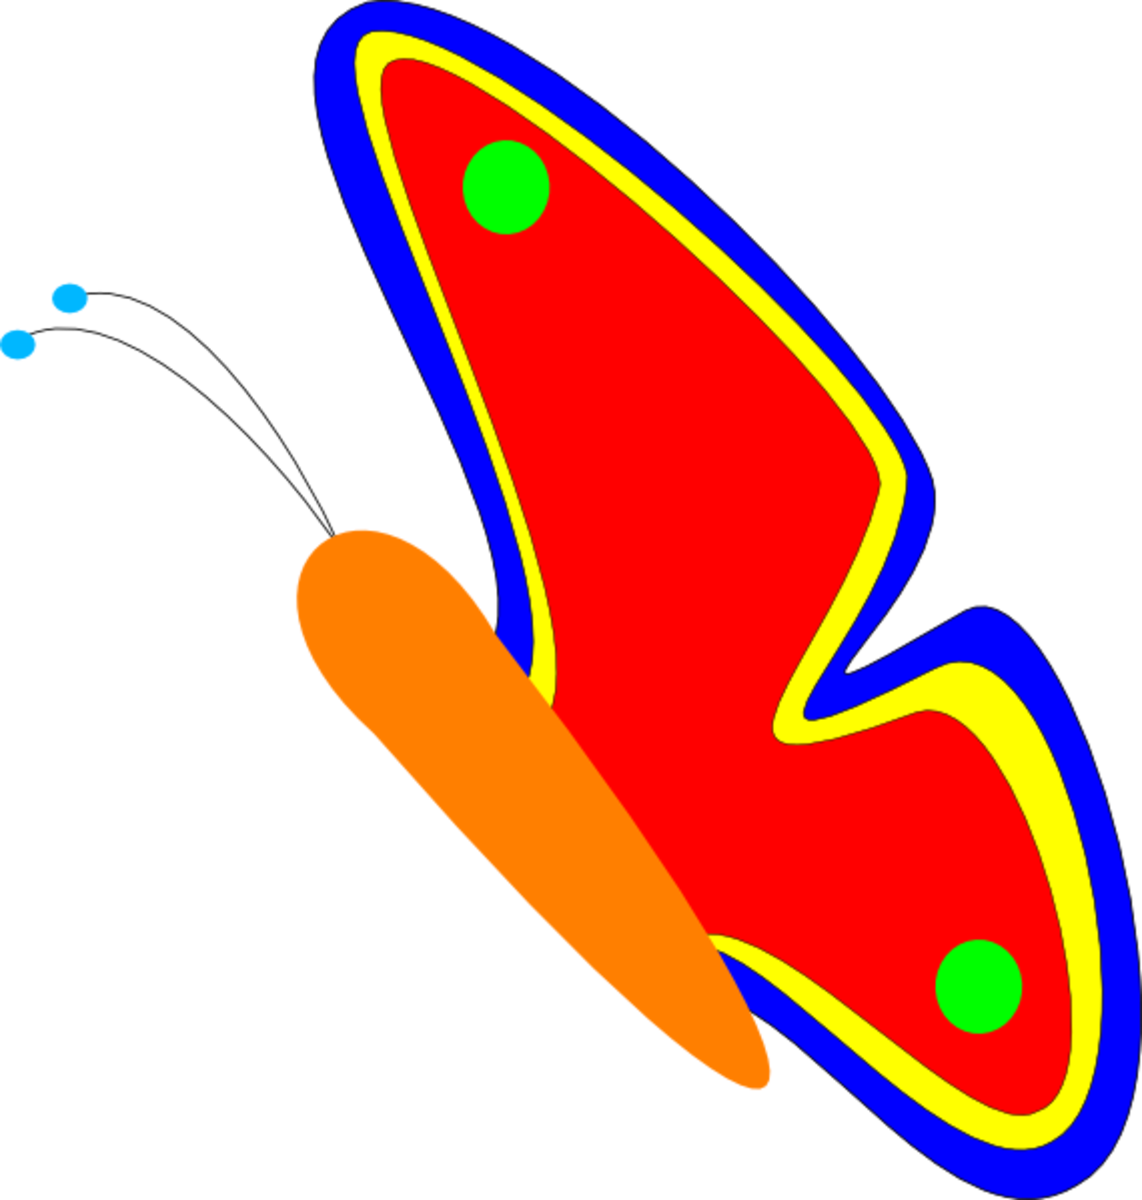 Orange Butterfly with Red Wings